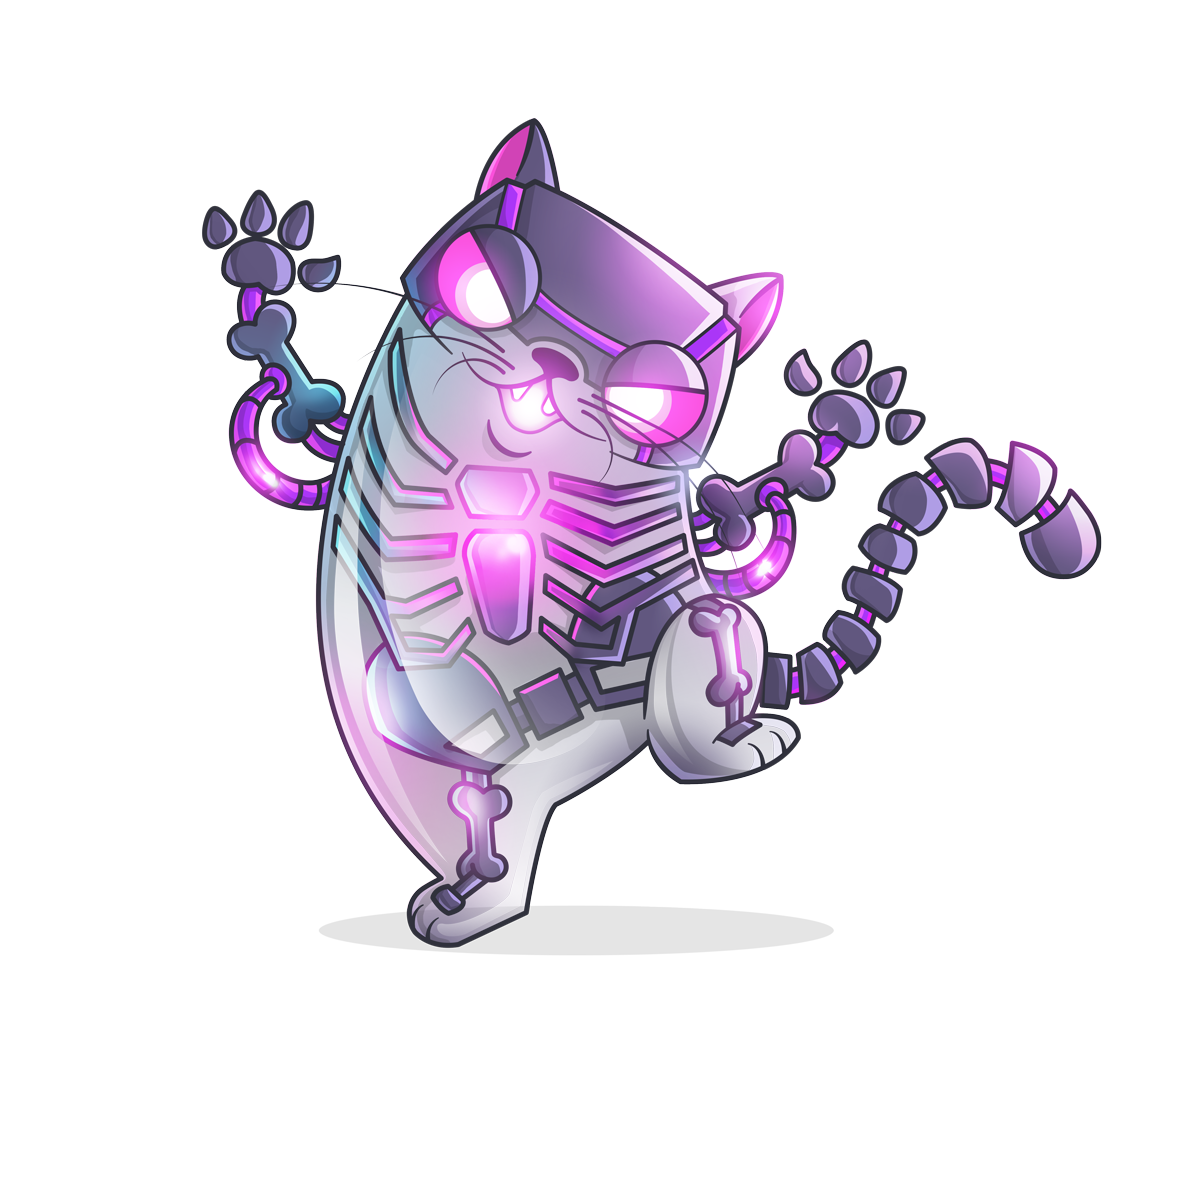 cryptokitty #1730264